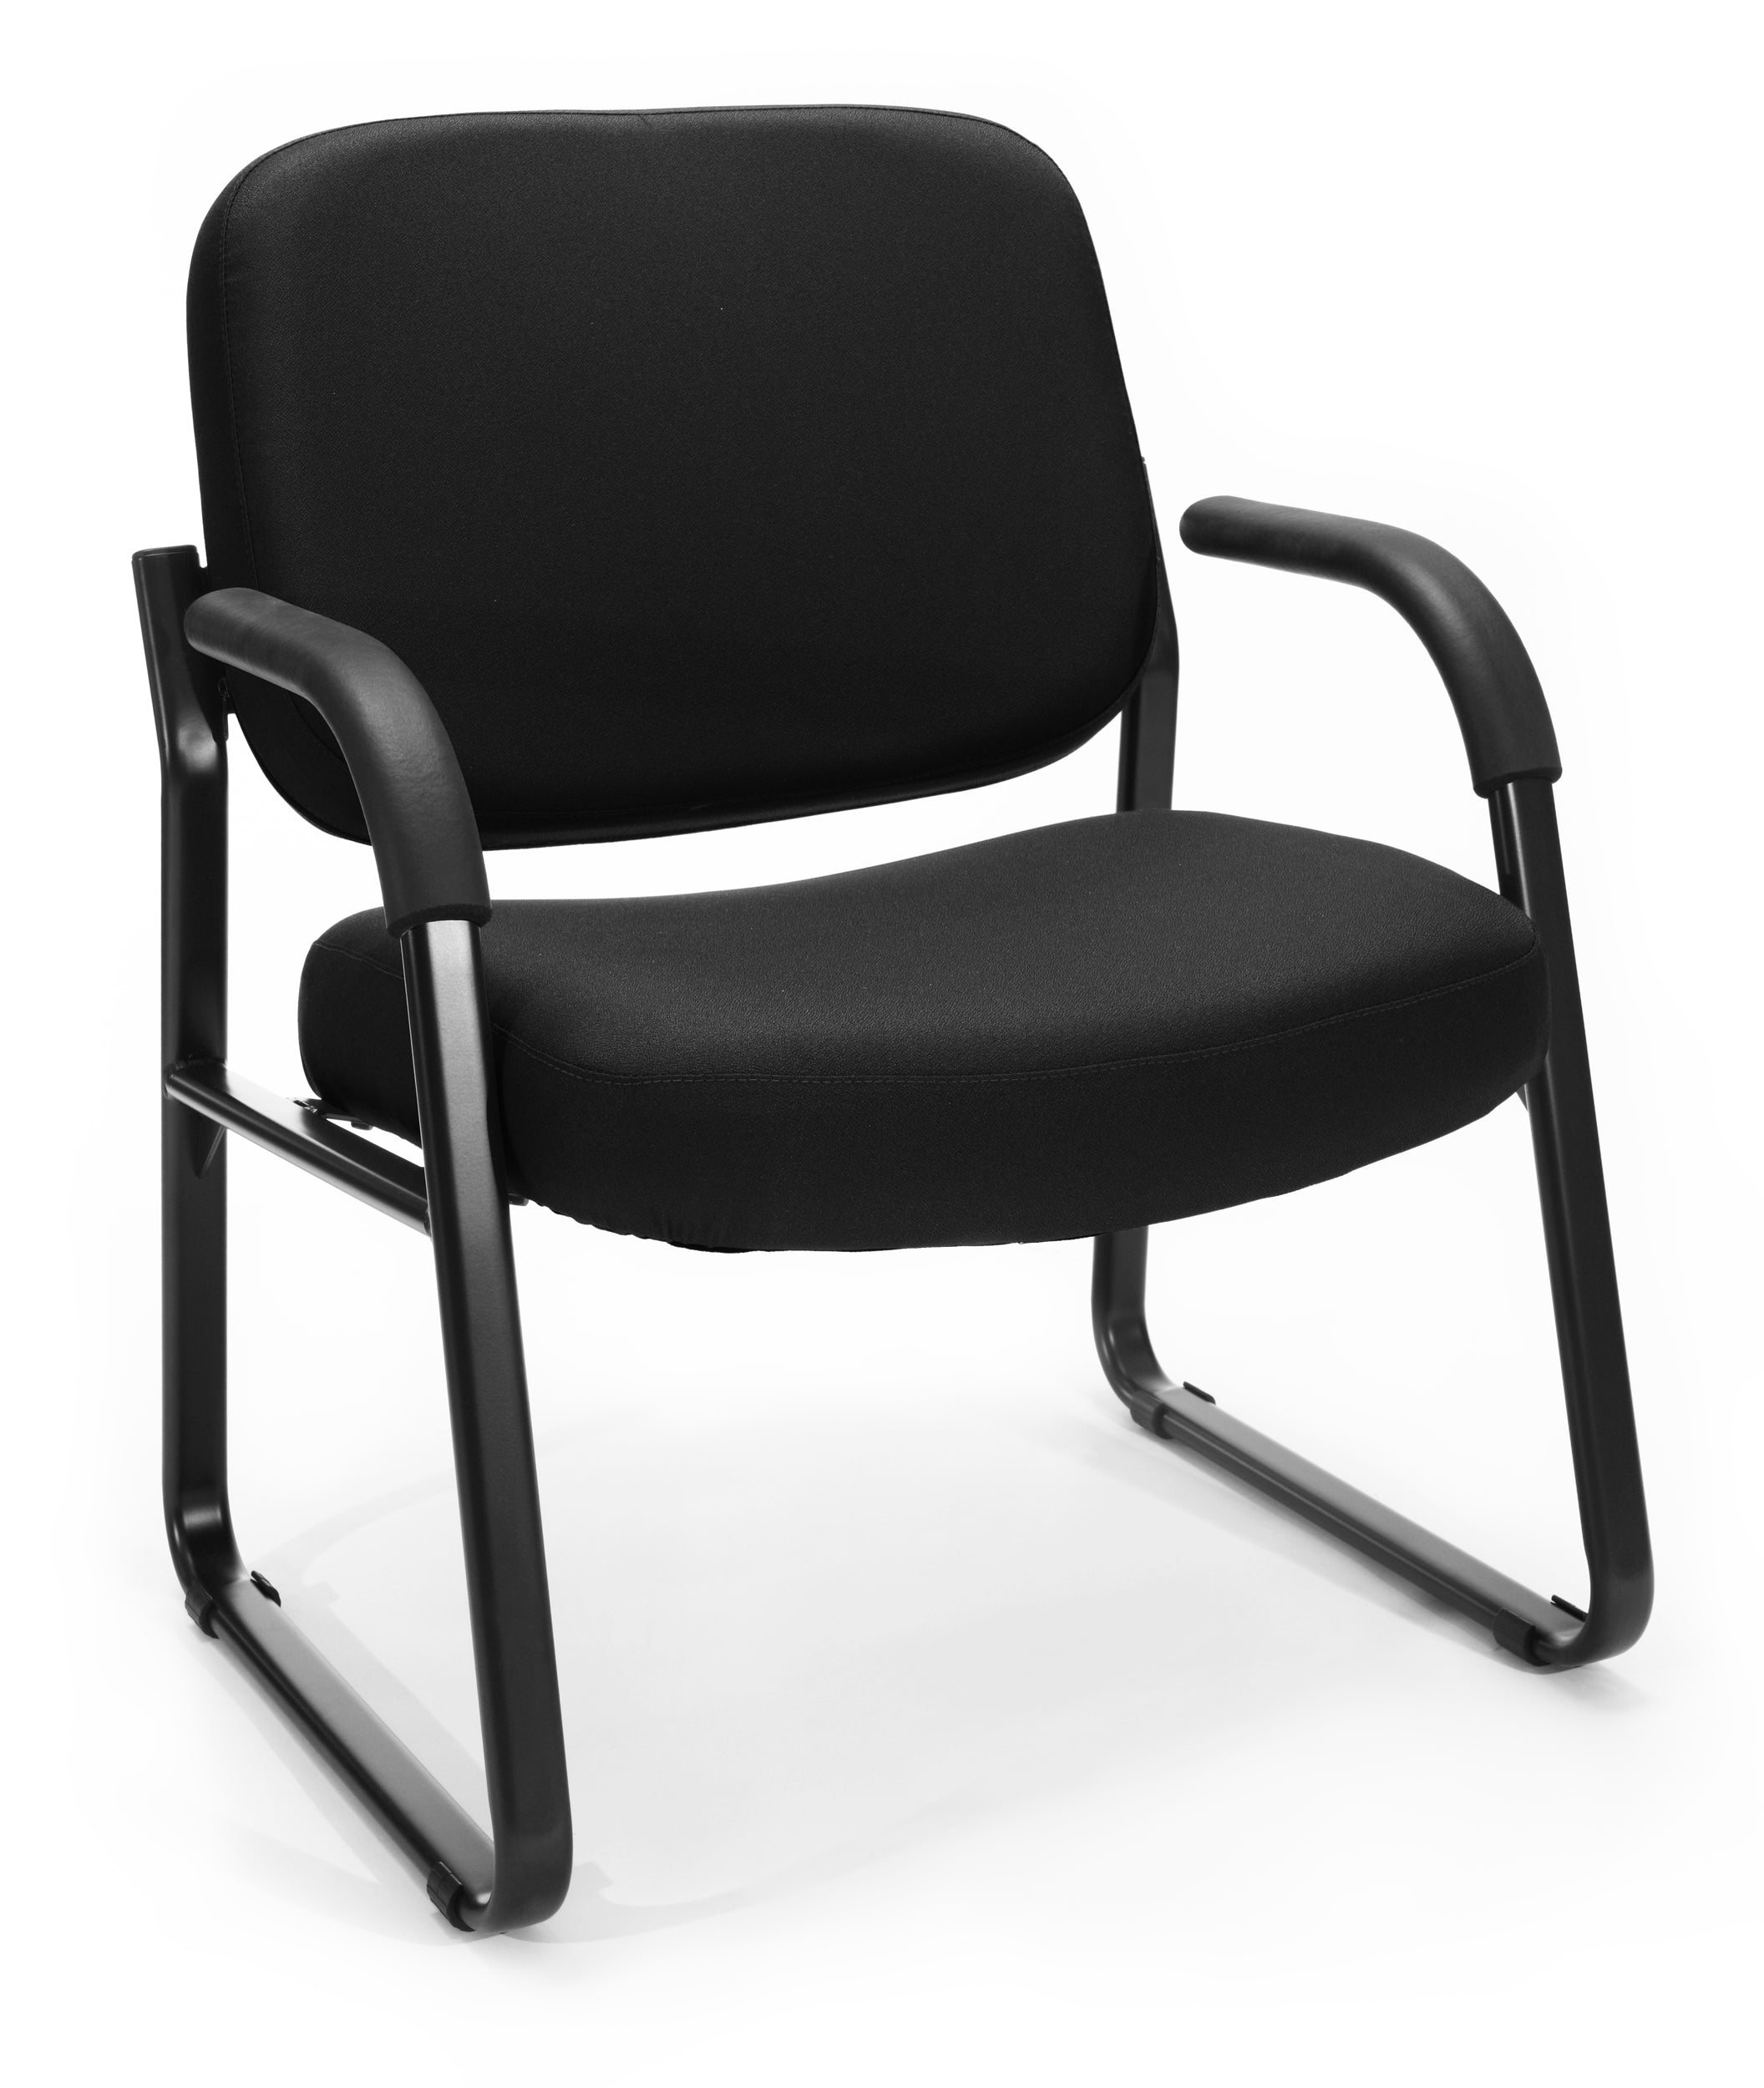 Ofminc MODEL 407 Big & Tall Guest / Reception Arm Chair